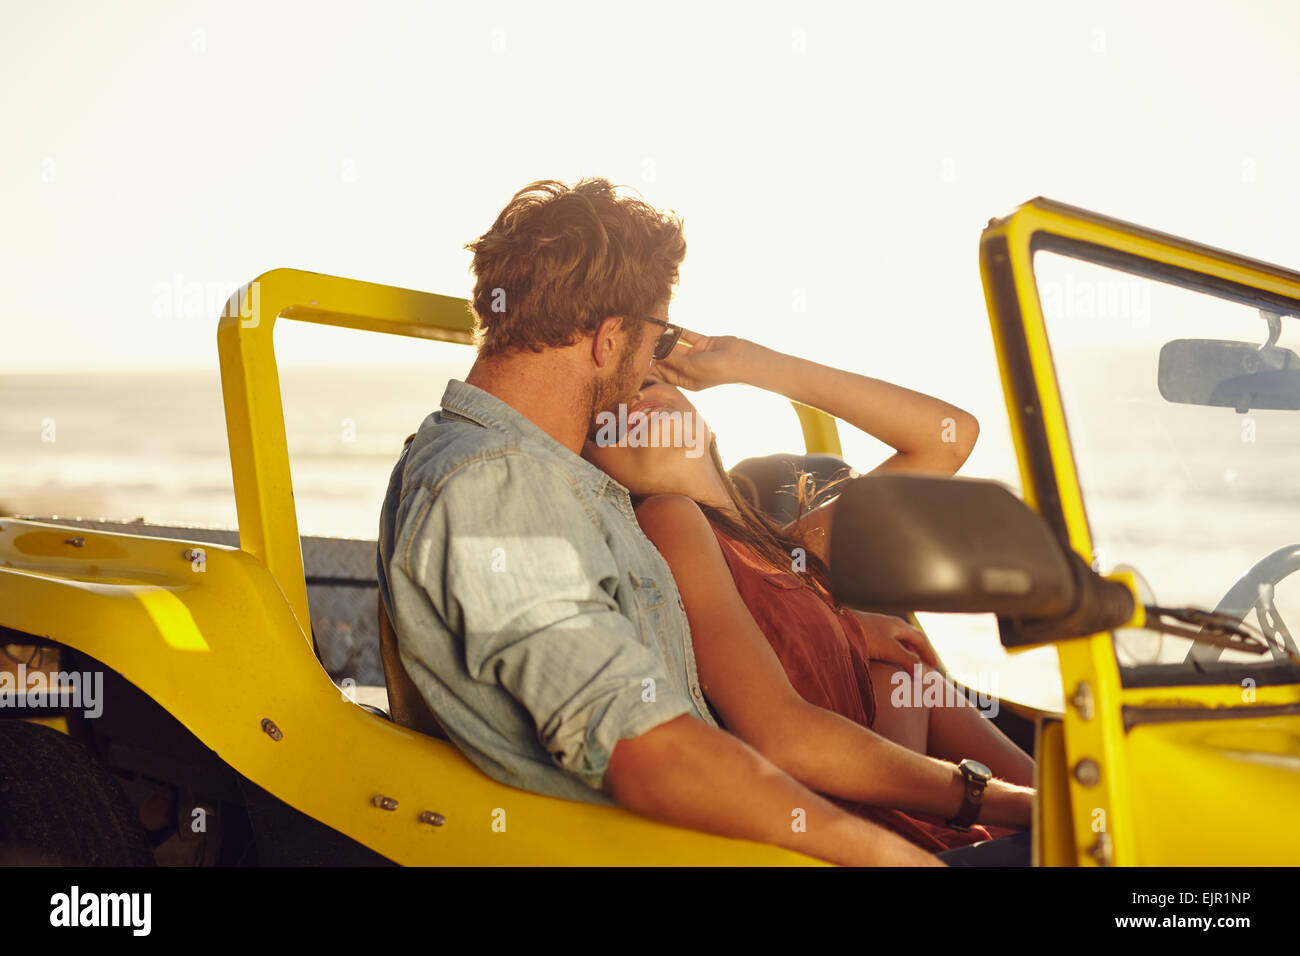 Affectionate young couple in a car. Young couple sharing a romantic moment while on a road trip. - Stock Image